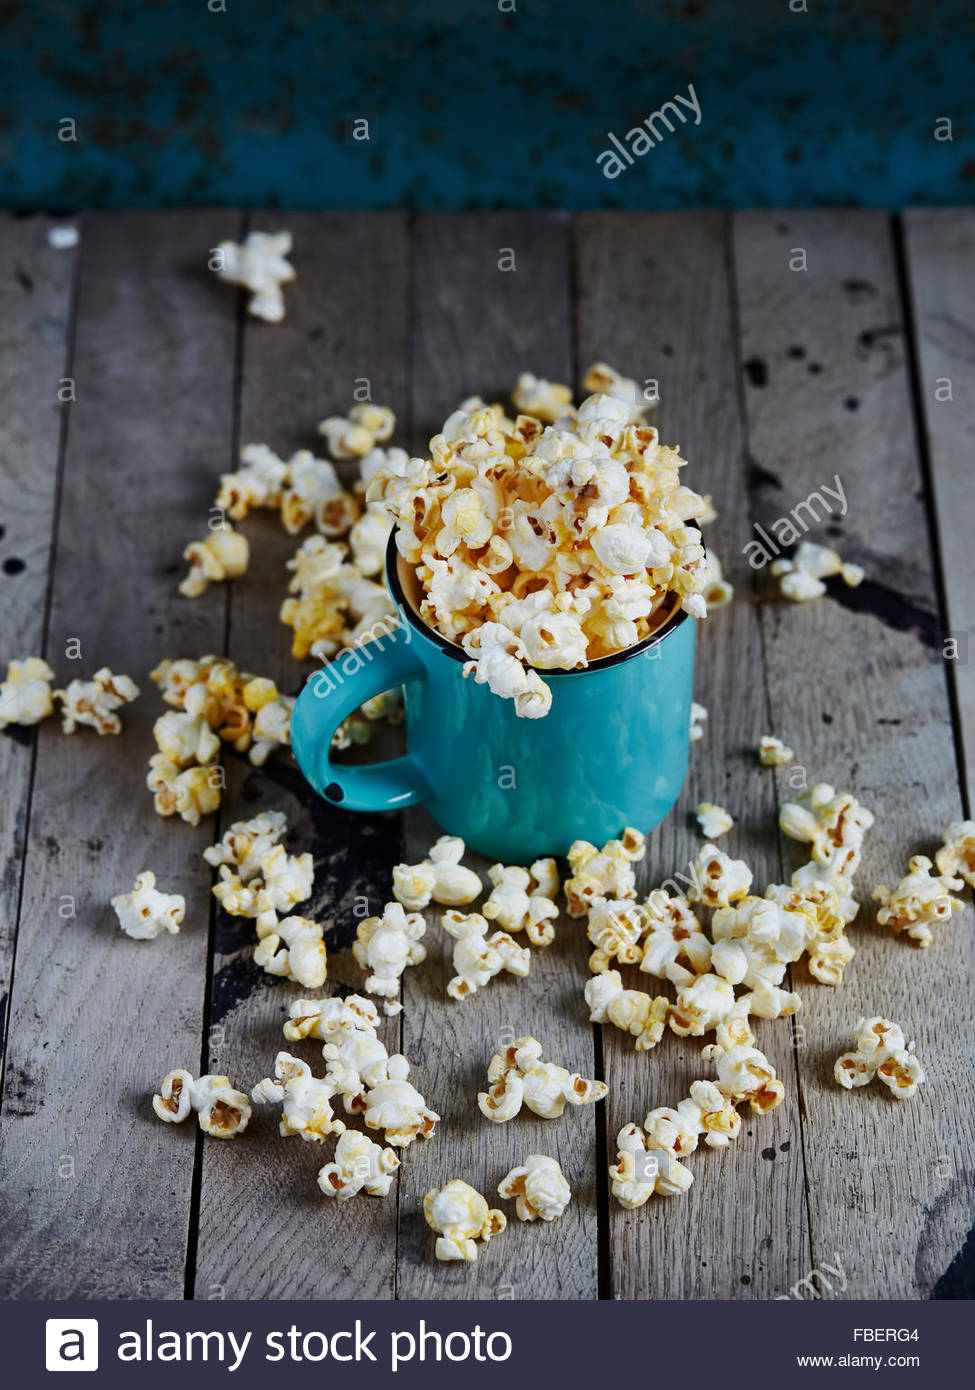 Mint cup full of popcorn - Stock Image